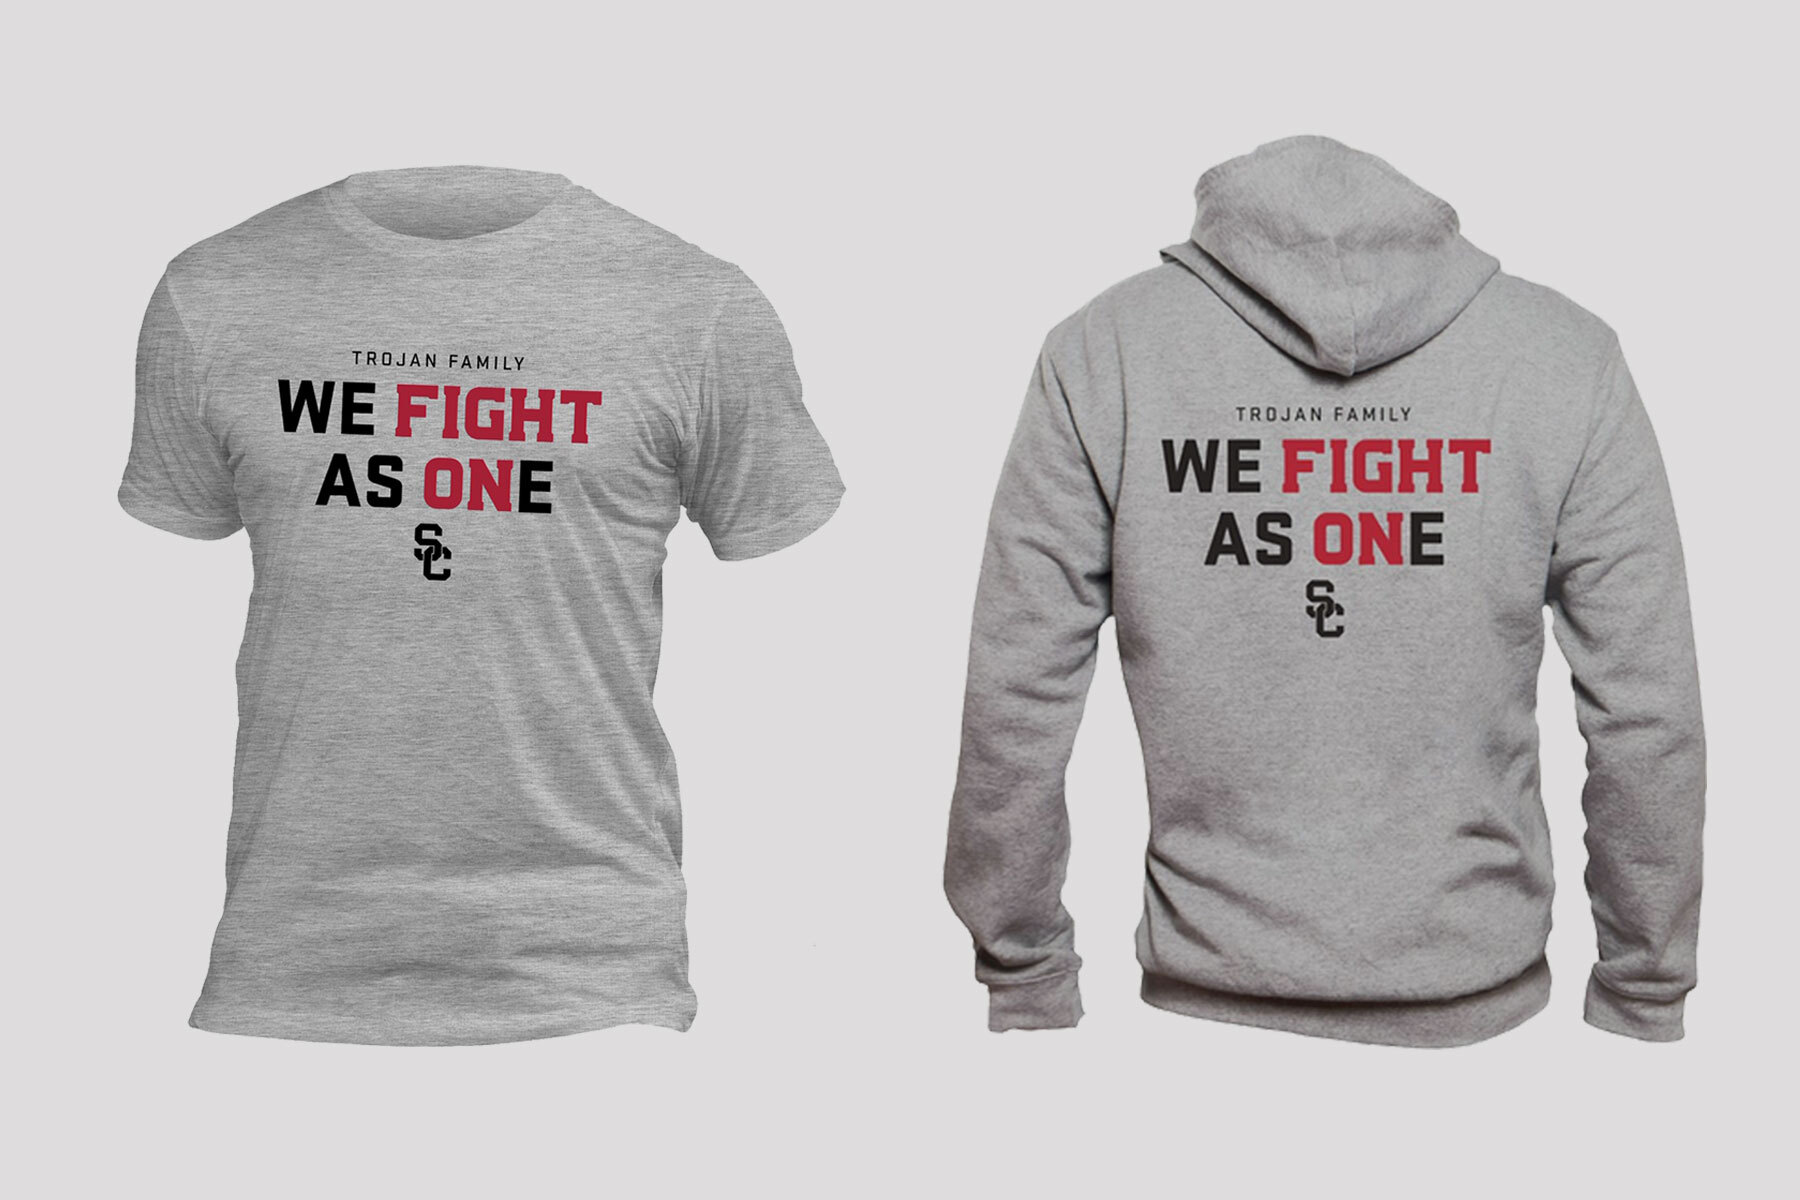 We Fight As One USC shirts